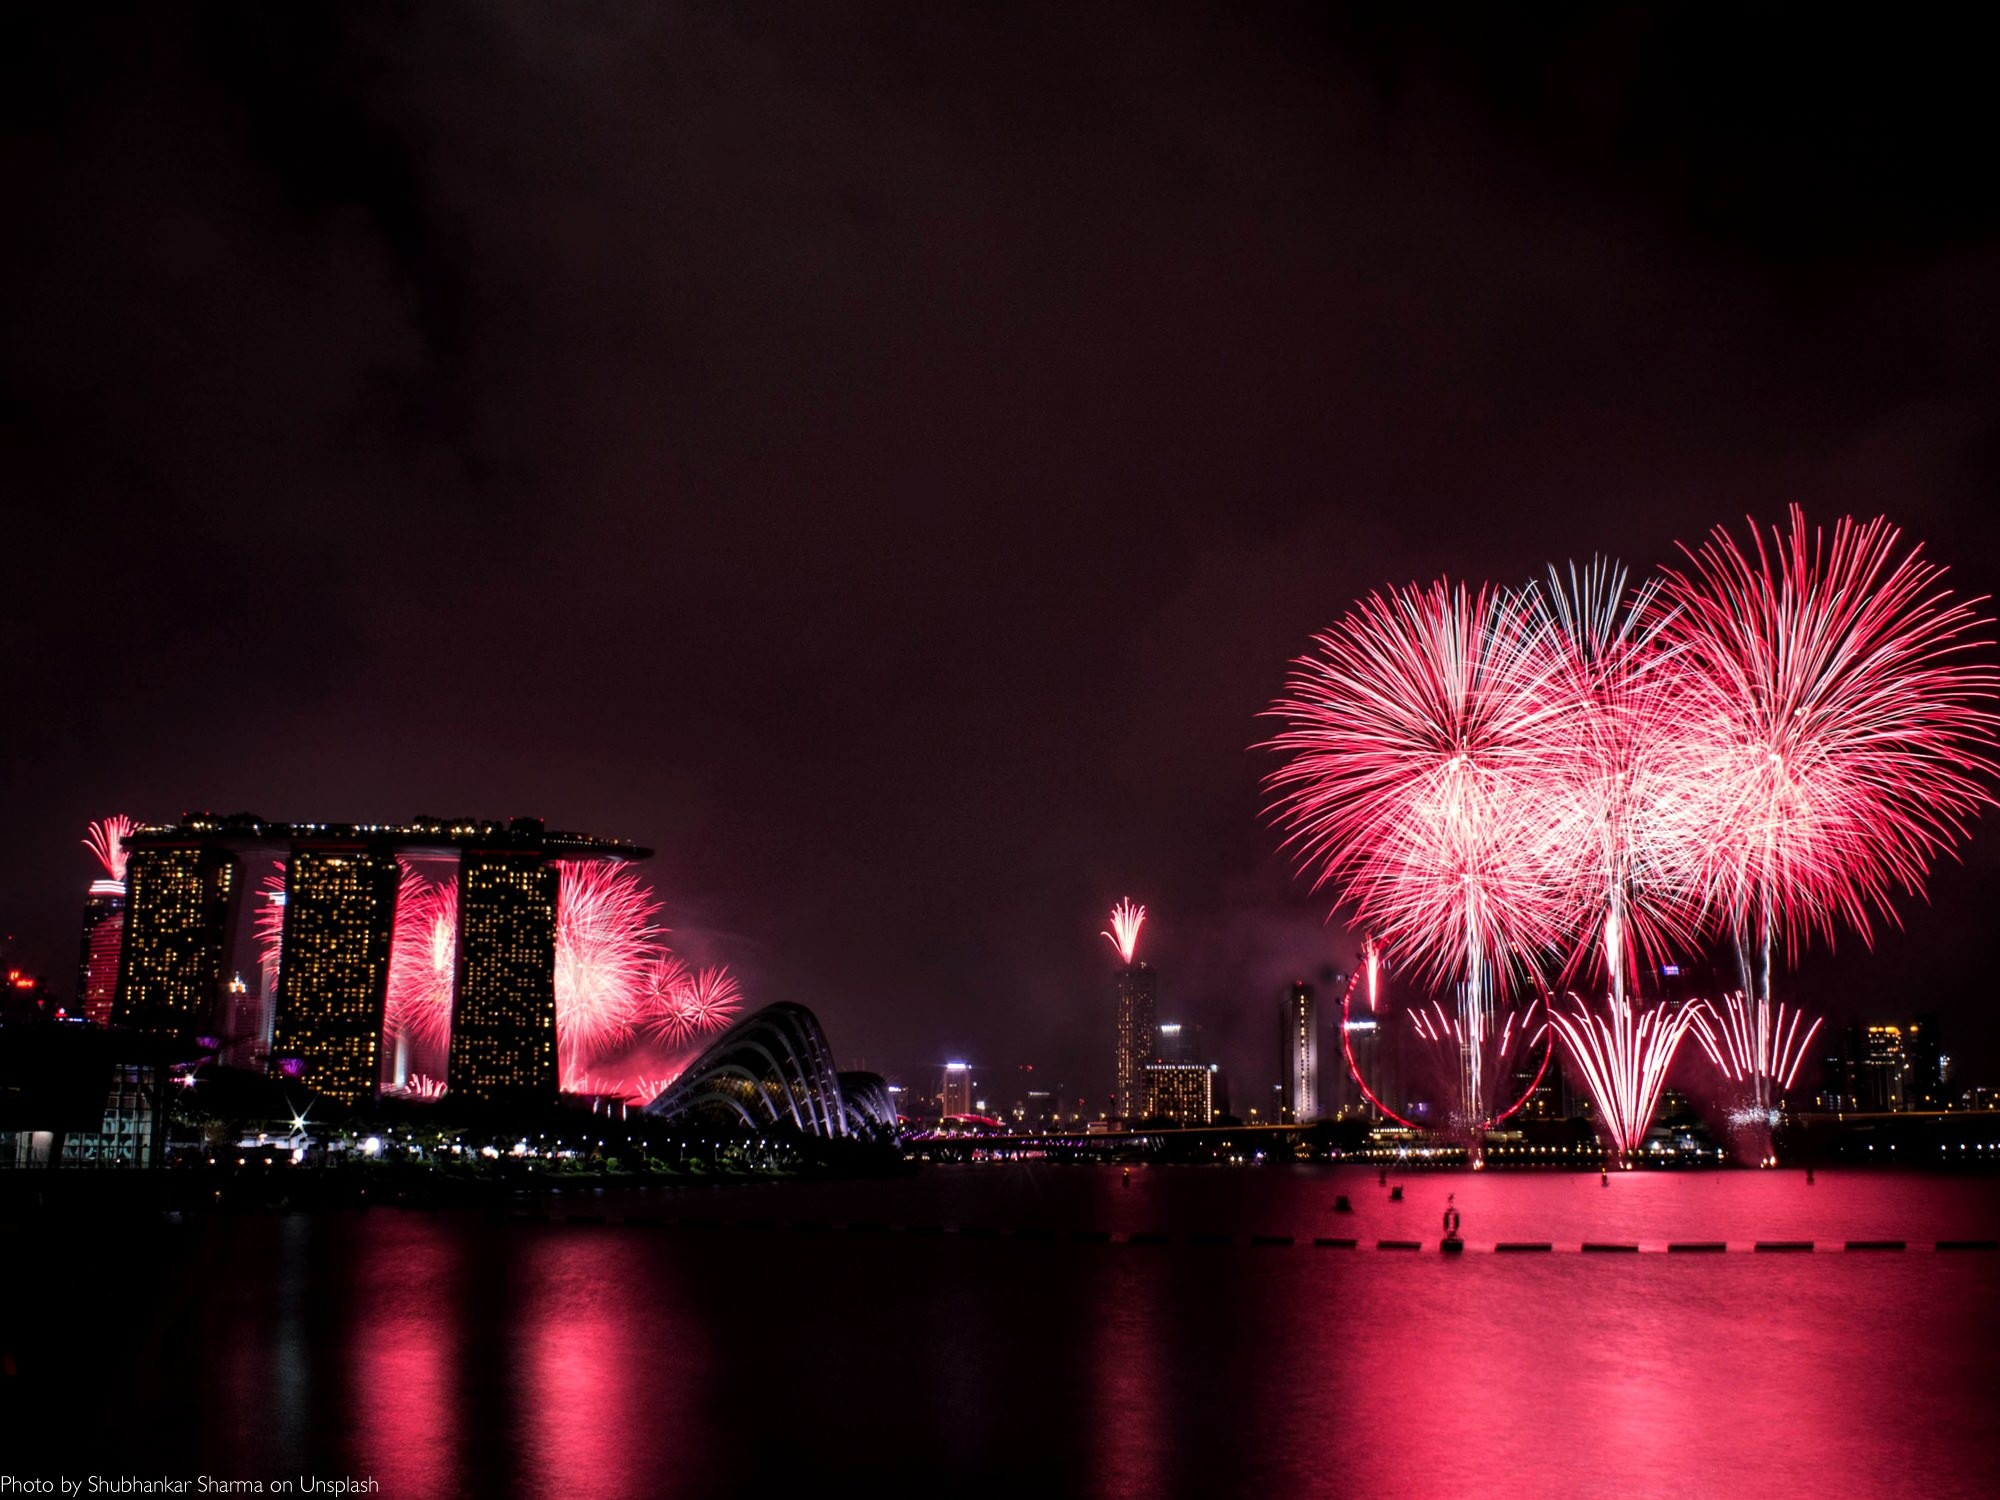 National Day Calendar March Más Recientes Blog 9 Things Singaporean About Red Army Watches Of National Day Calendar March Recientes National Food Days today Holiday Foods Calendar 2019